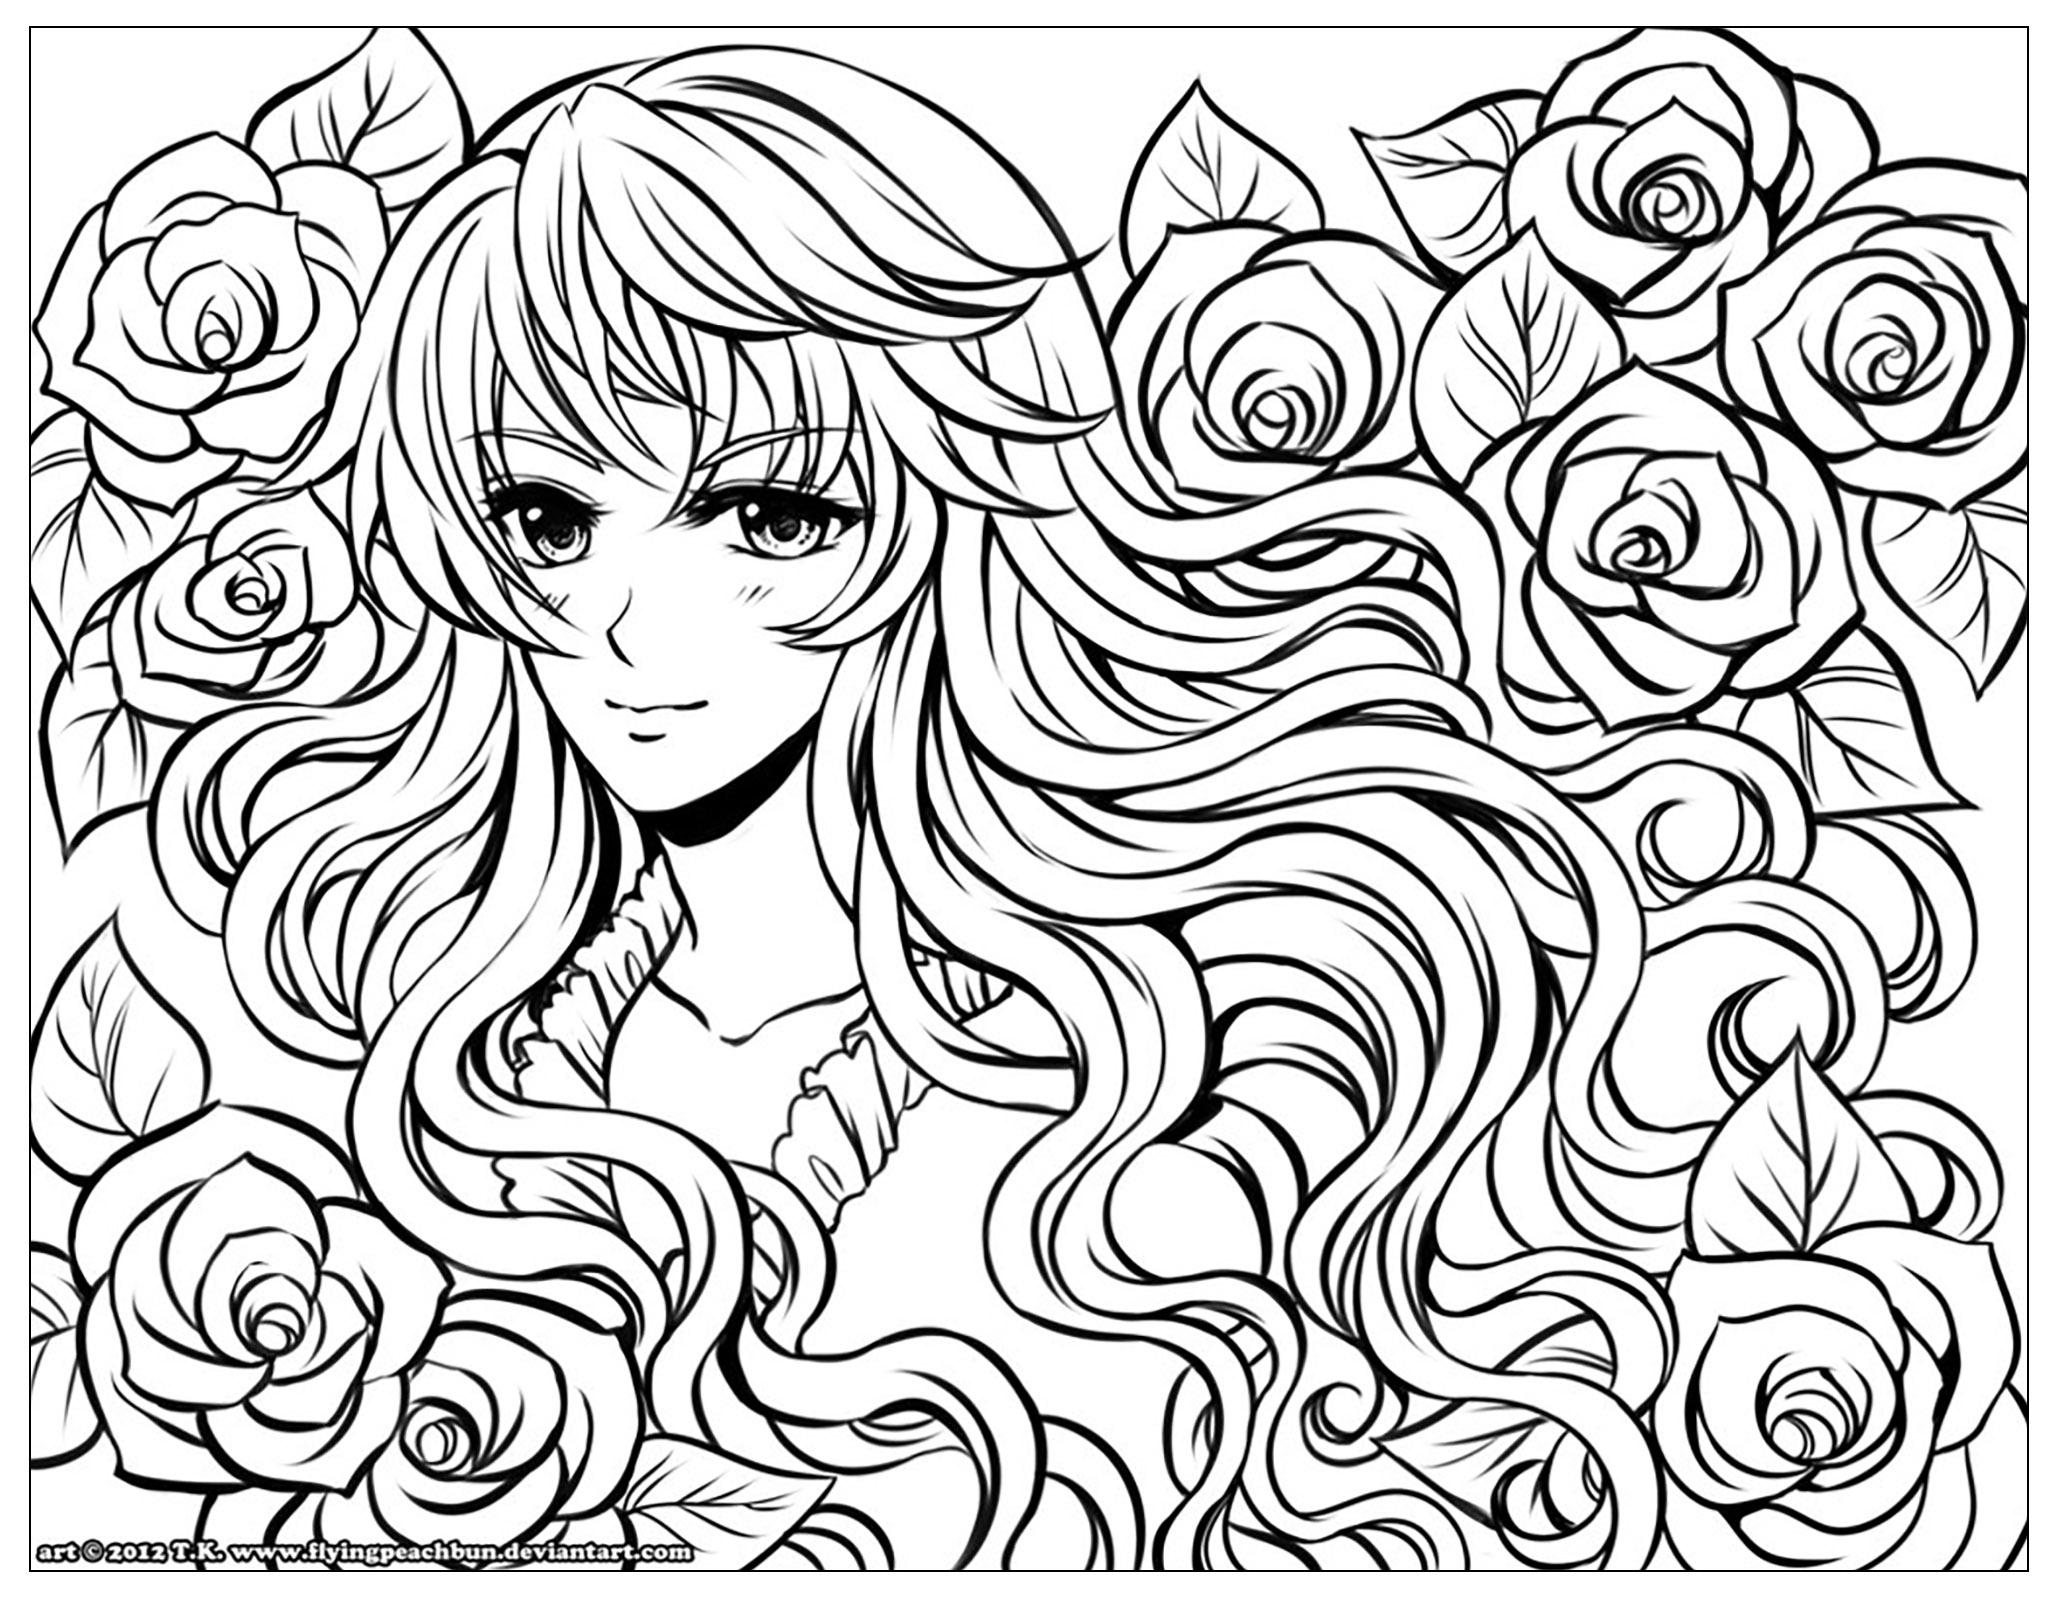 Manga Anime Coloring Pages for Adults Printable Of Free Coloring Pages Printable New Kilari and Seiji Anime Coloring Printable